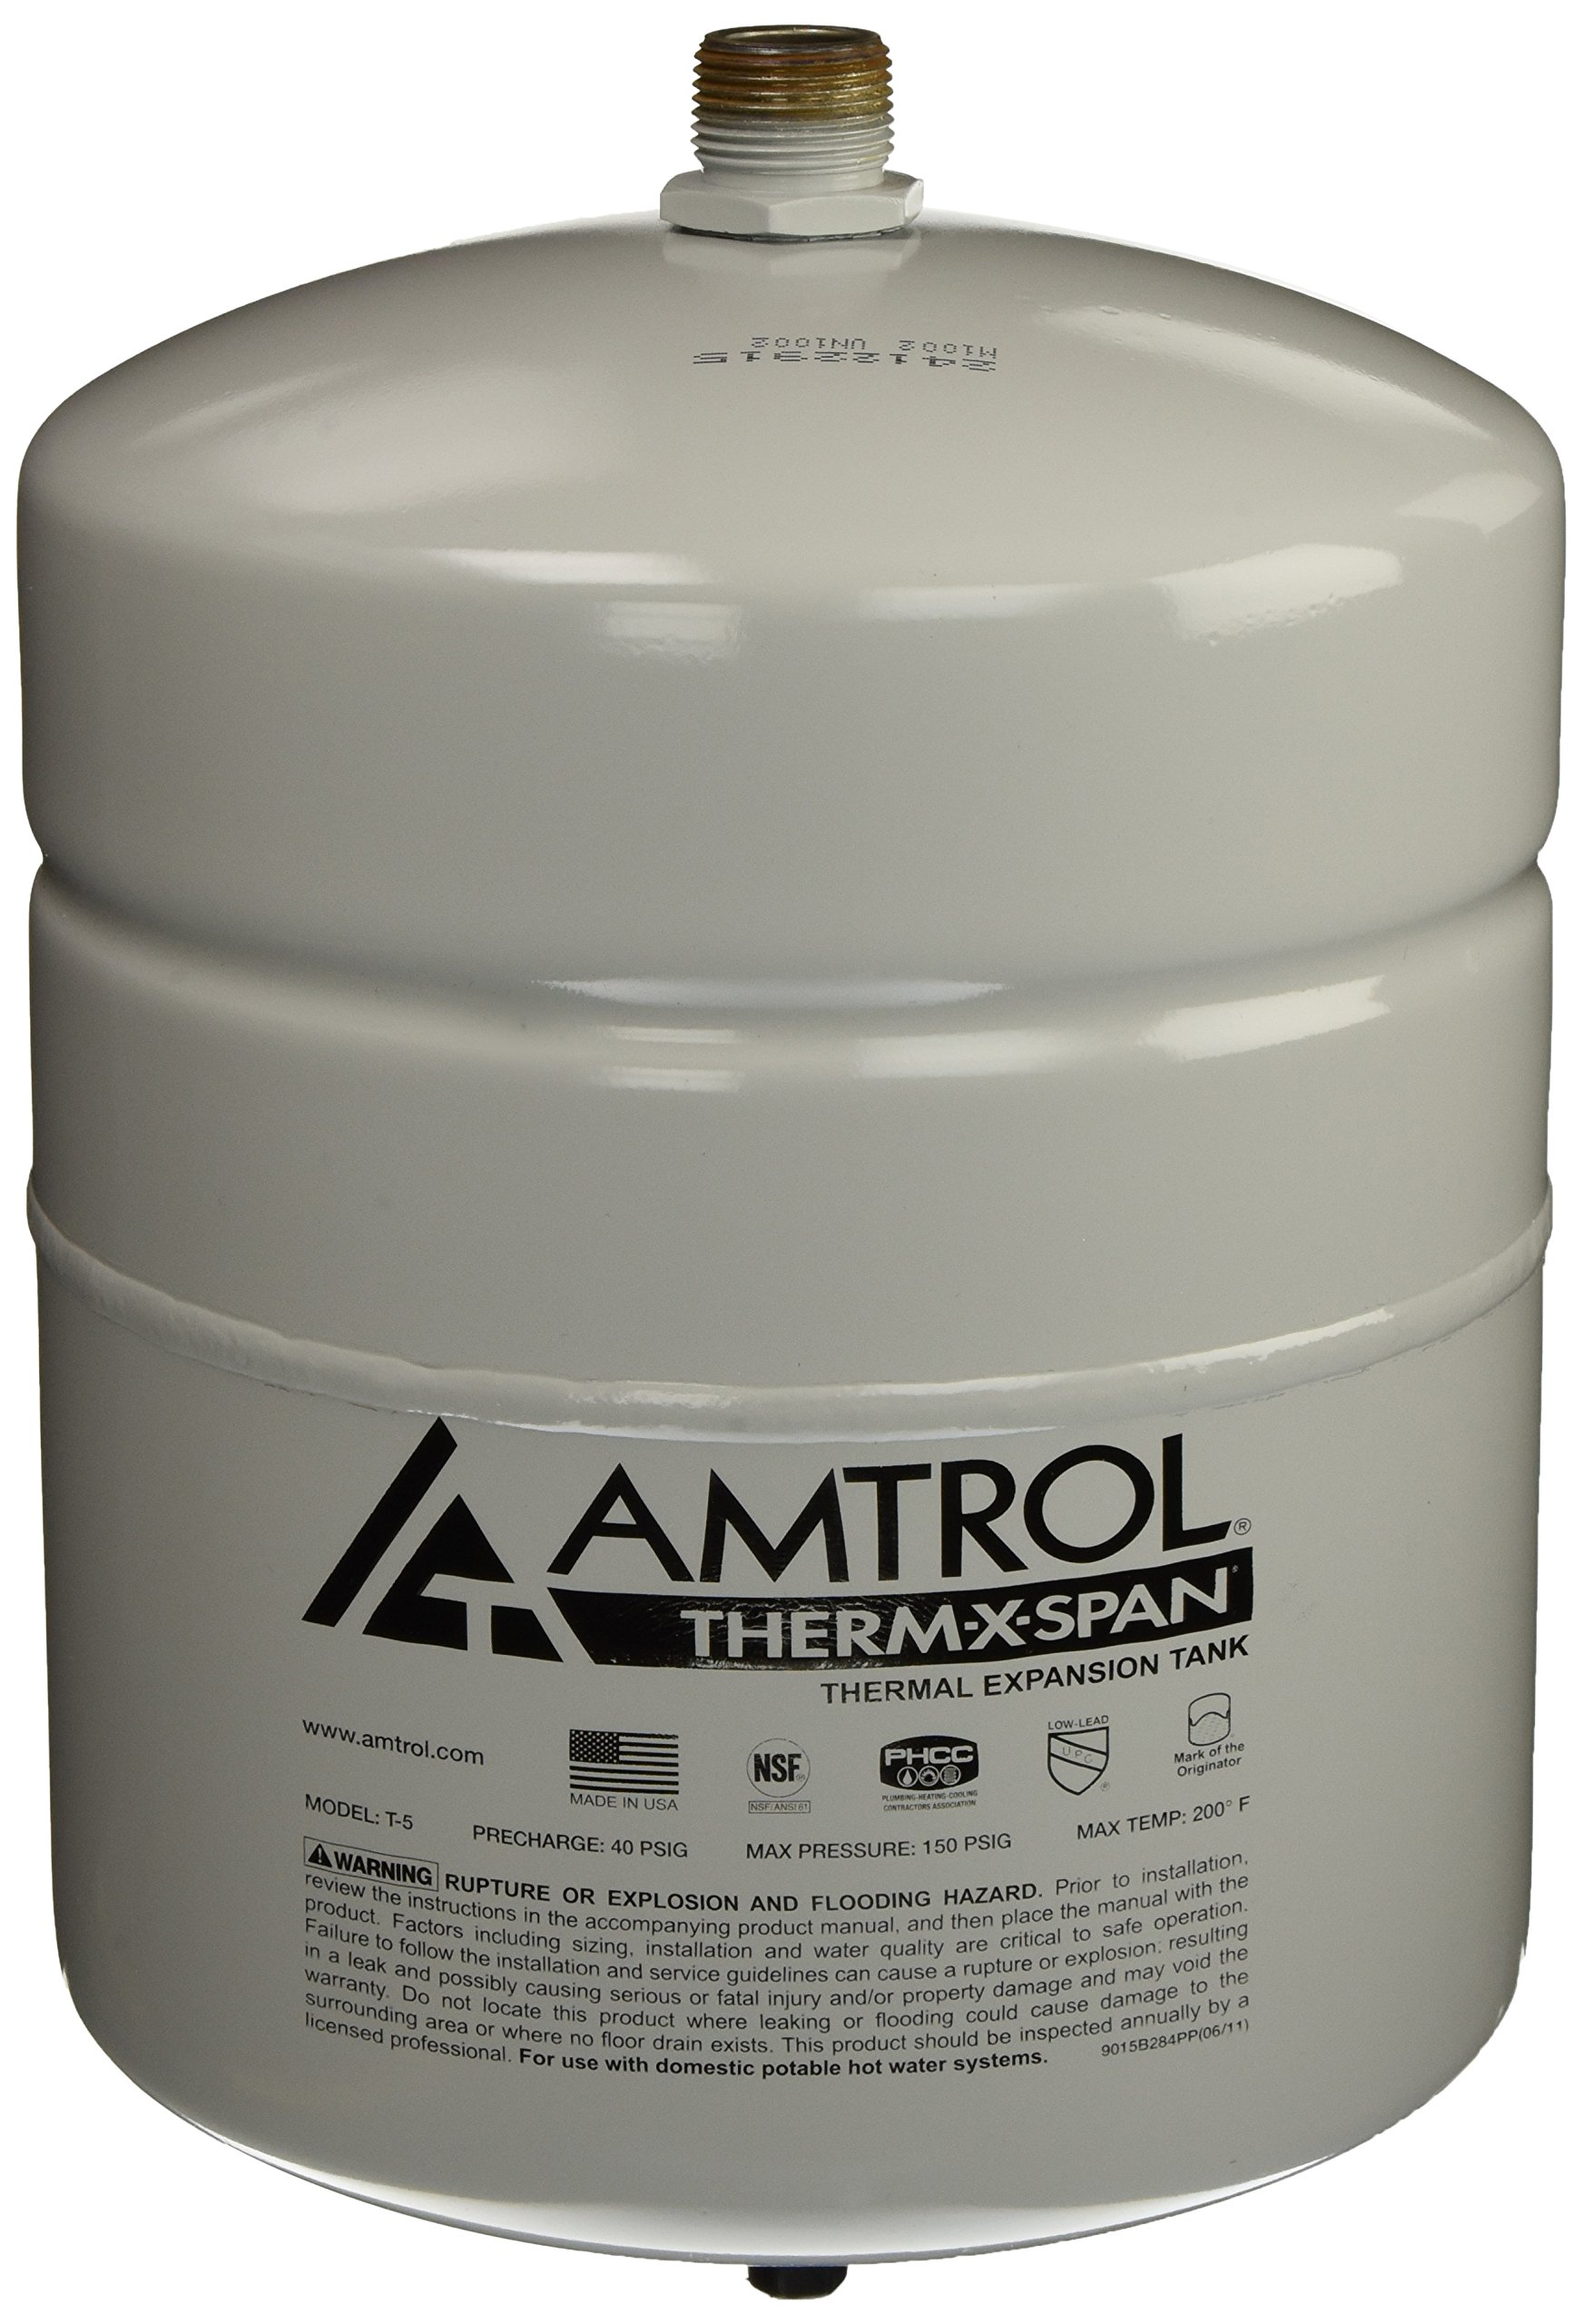 Amtrol T-5 THERM-X-SPAN Expansion Tank by Amtrol